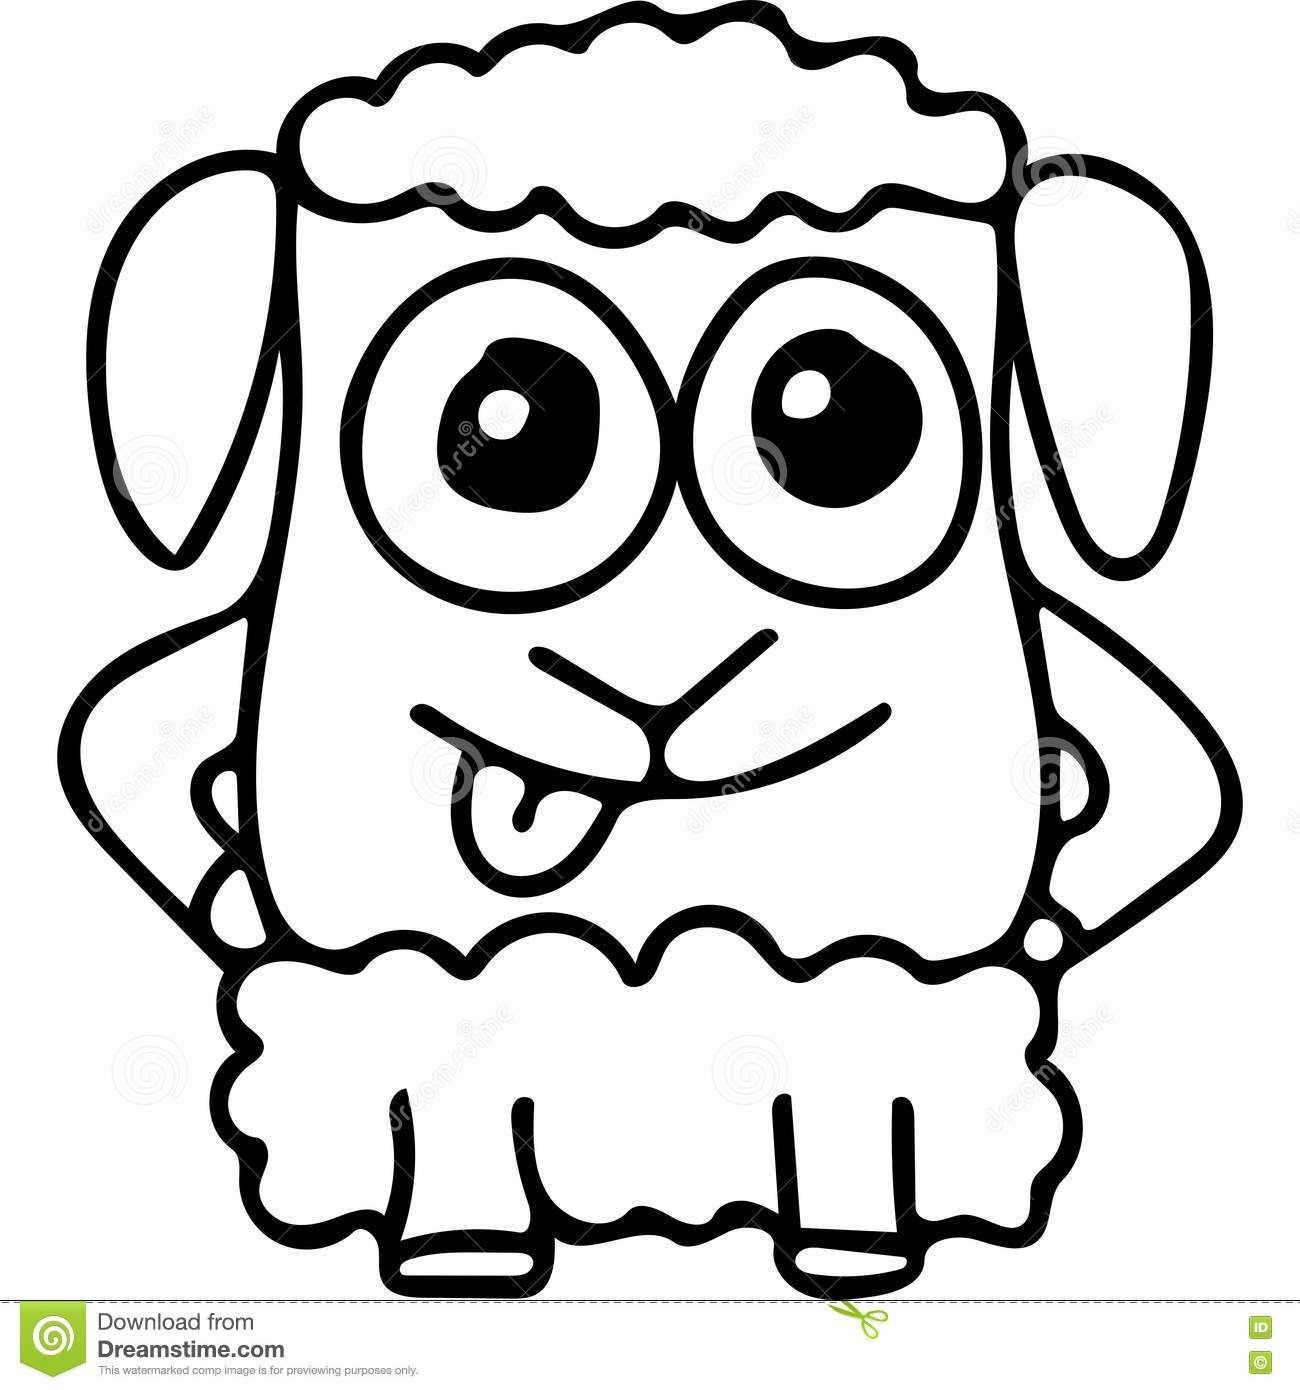 Sheep kids coloring page stock illustration. Illustration of learn ...